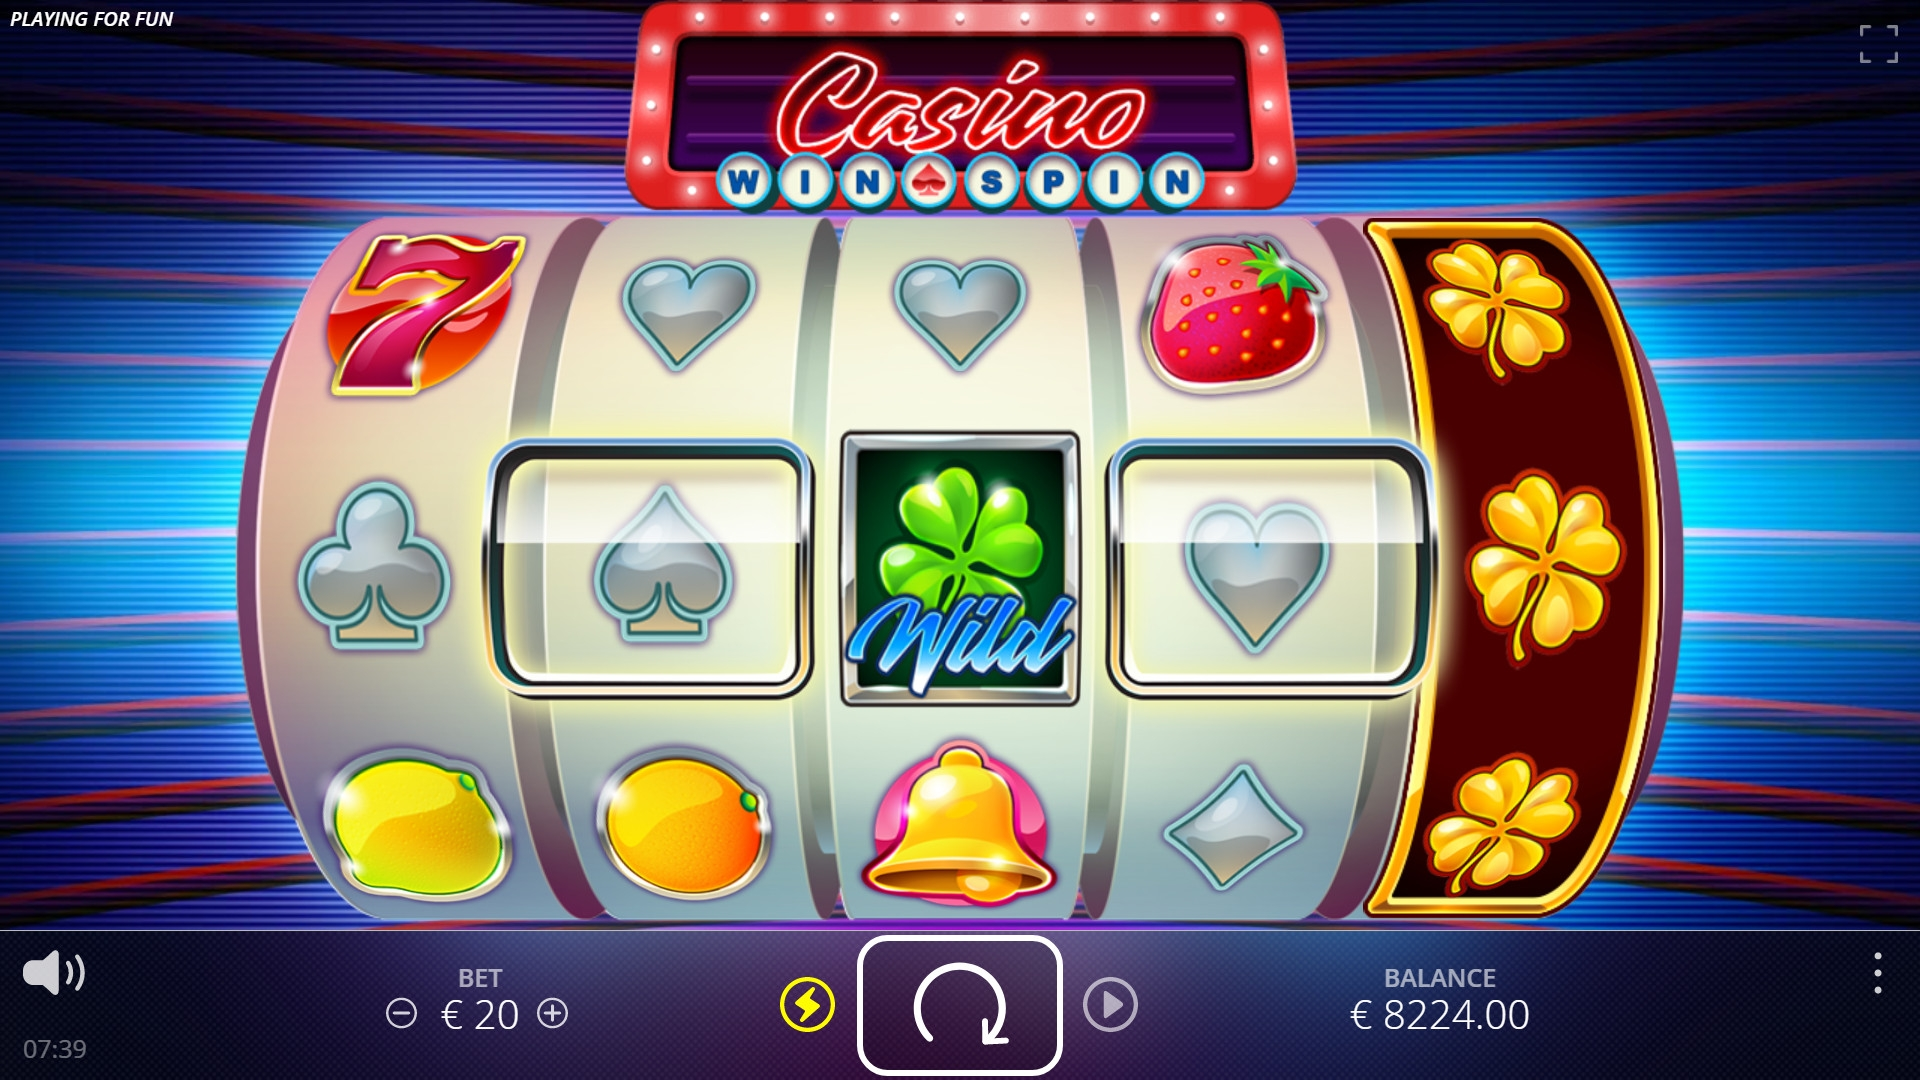 Casino Win Spin (Casino Win Spin) from category Slots